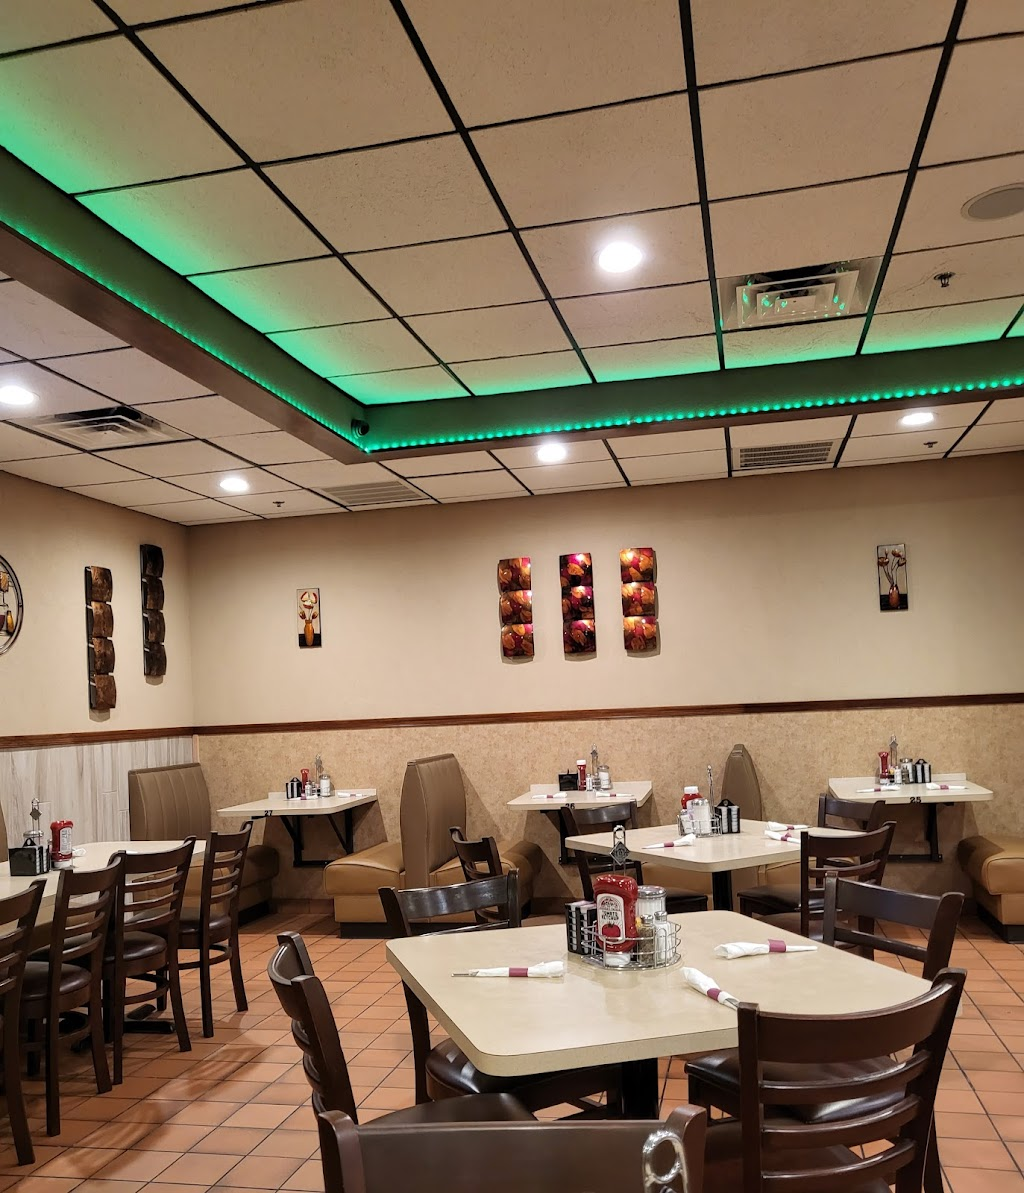 Manada Hill Diner | restaurant | 257 N Hershey Rd, West Hanover Township, PA 17112, USA | 7175401529 OR +1 717-540-1529